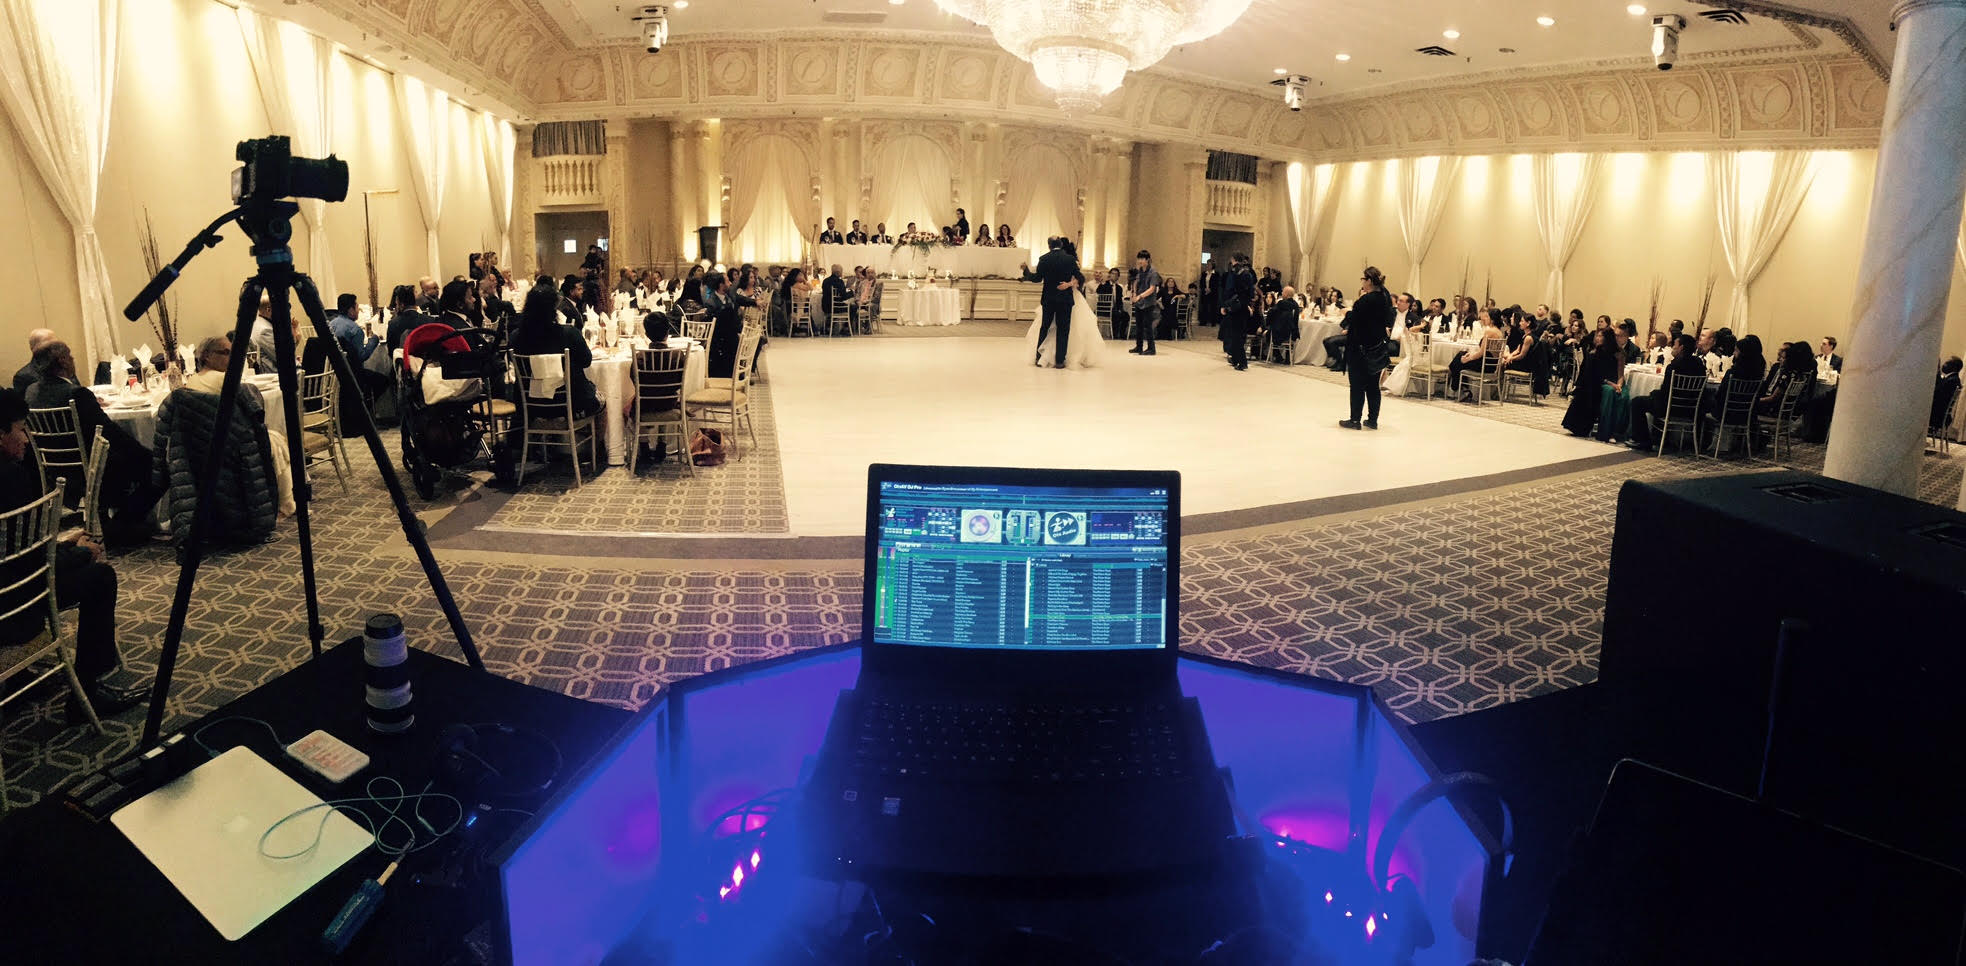 Thuraisingham Wedding - Paradise Banquet Hall, Vaughan